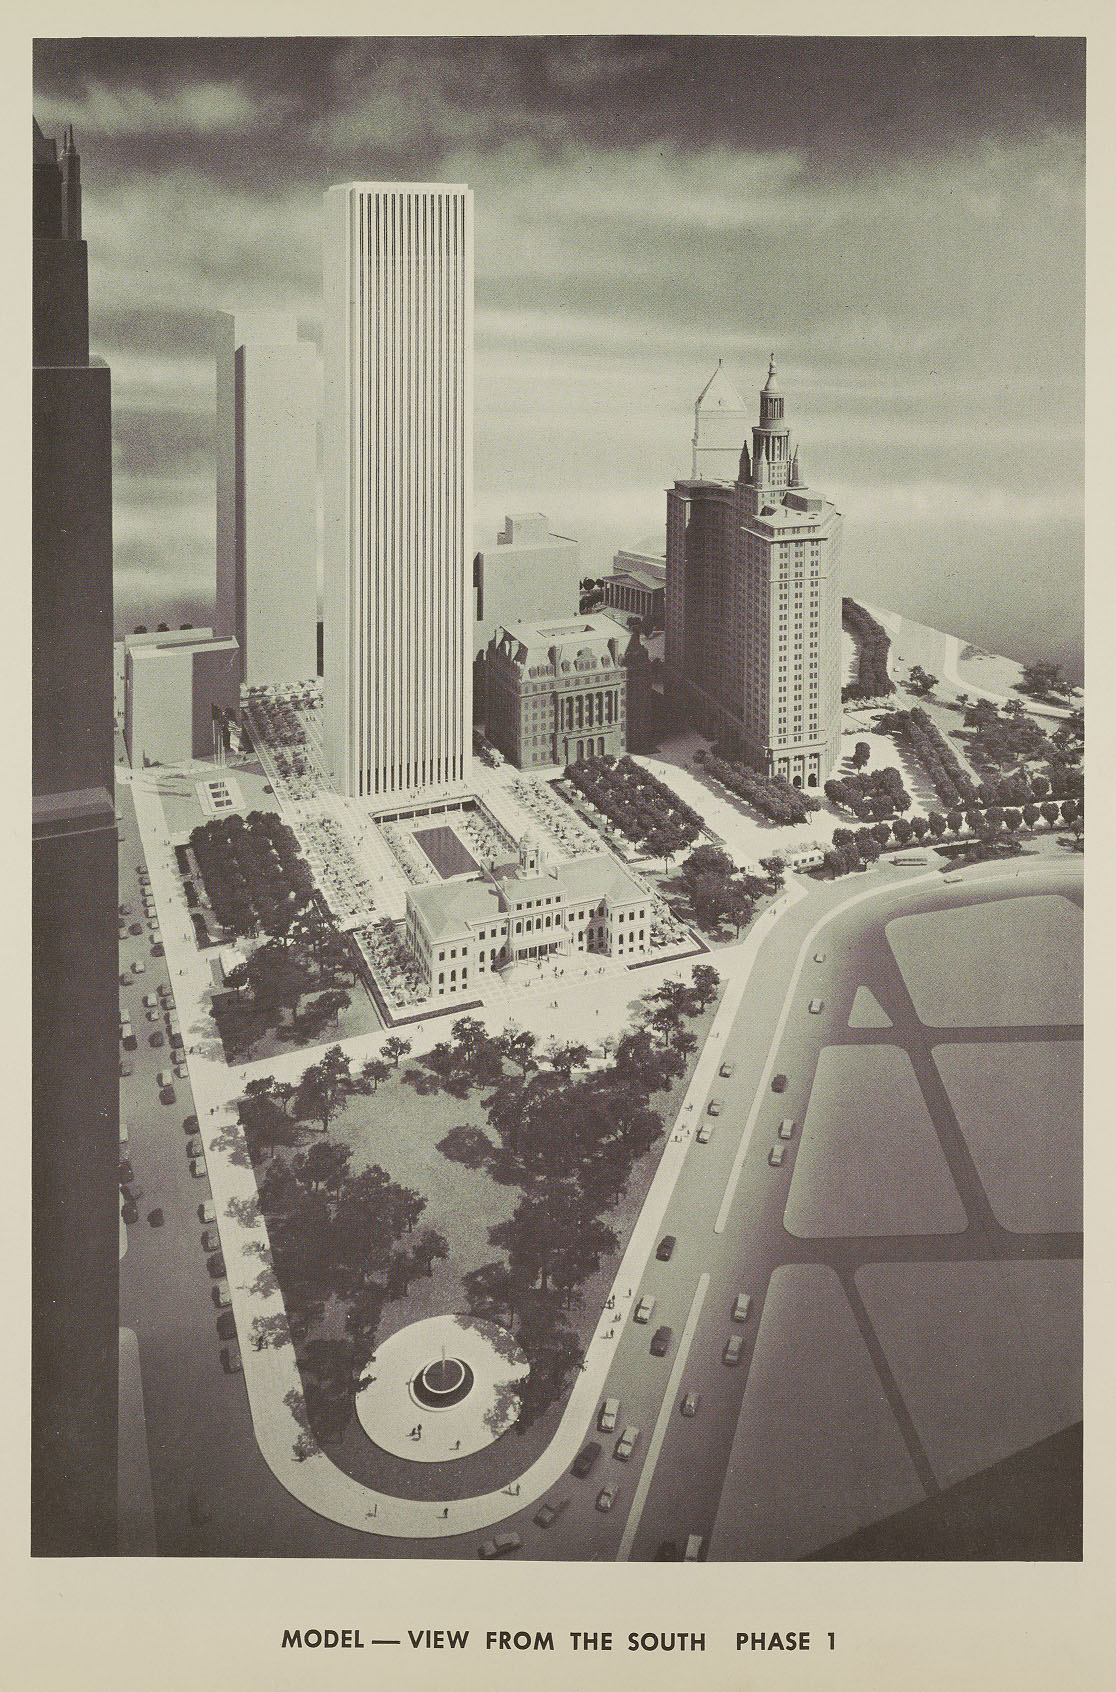 Phase One of the New York Civic Center, after the destruction of the Sun Building, The Emigrant Savings Bank, and the Tweed Courthouse. NYC Municipal Archives.